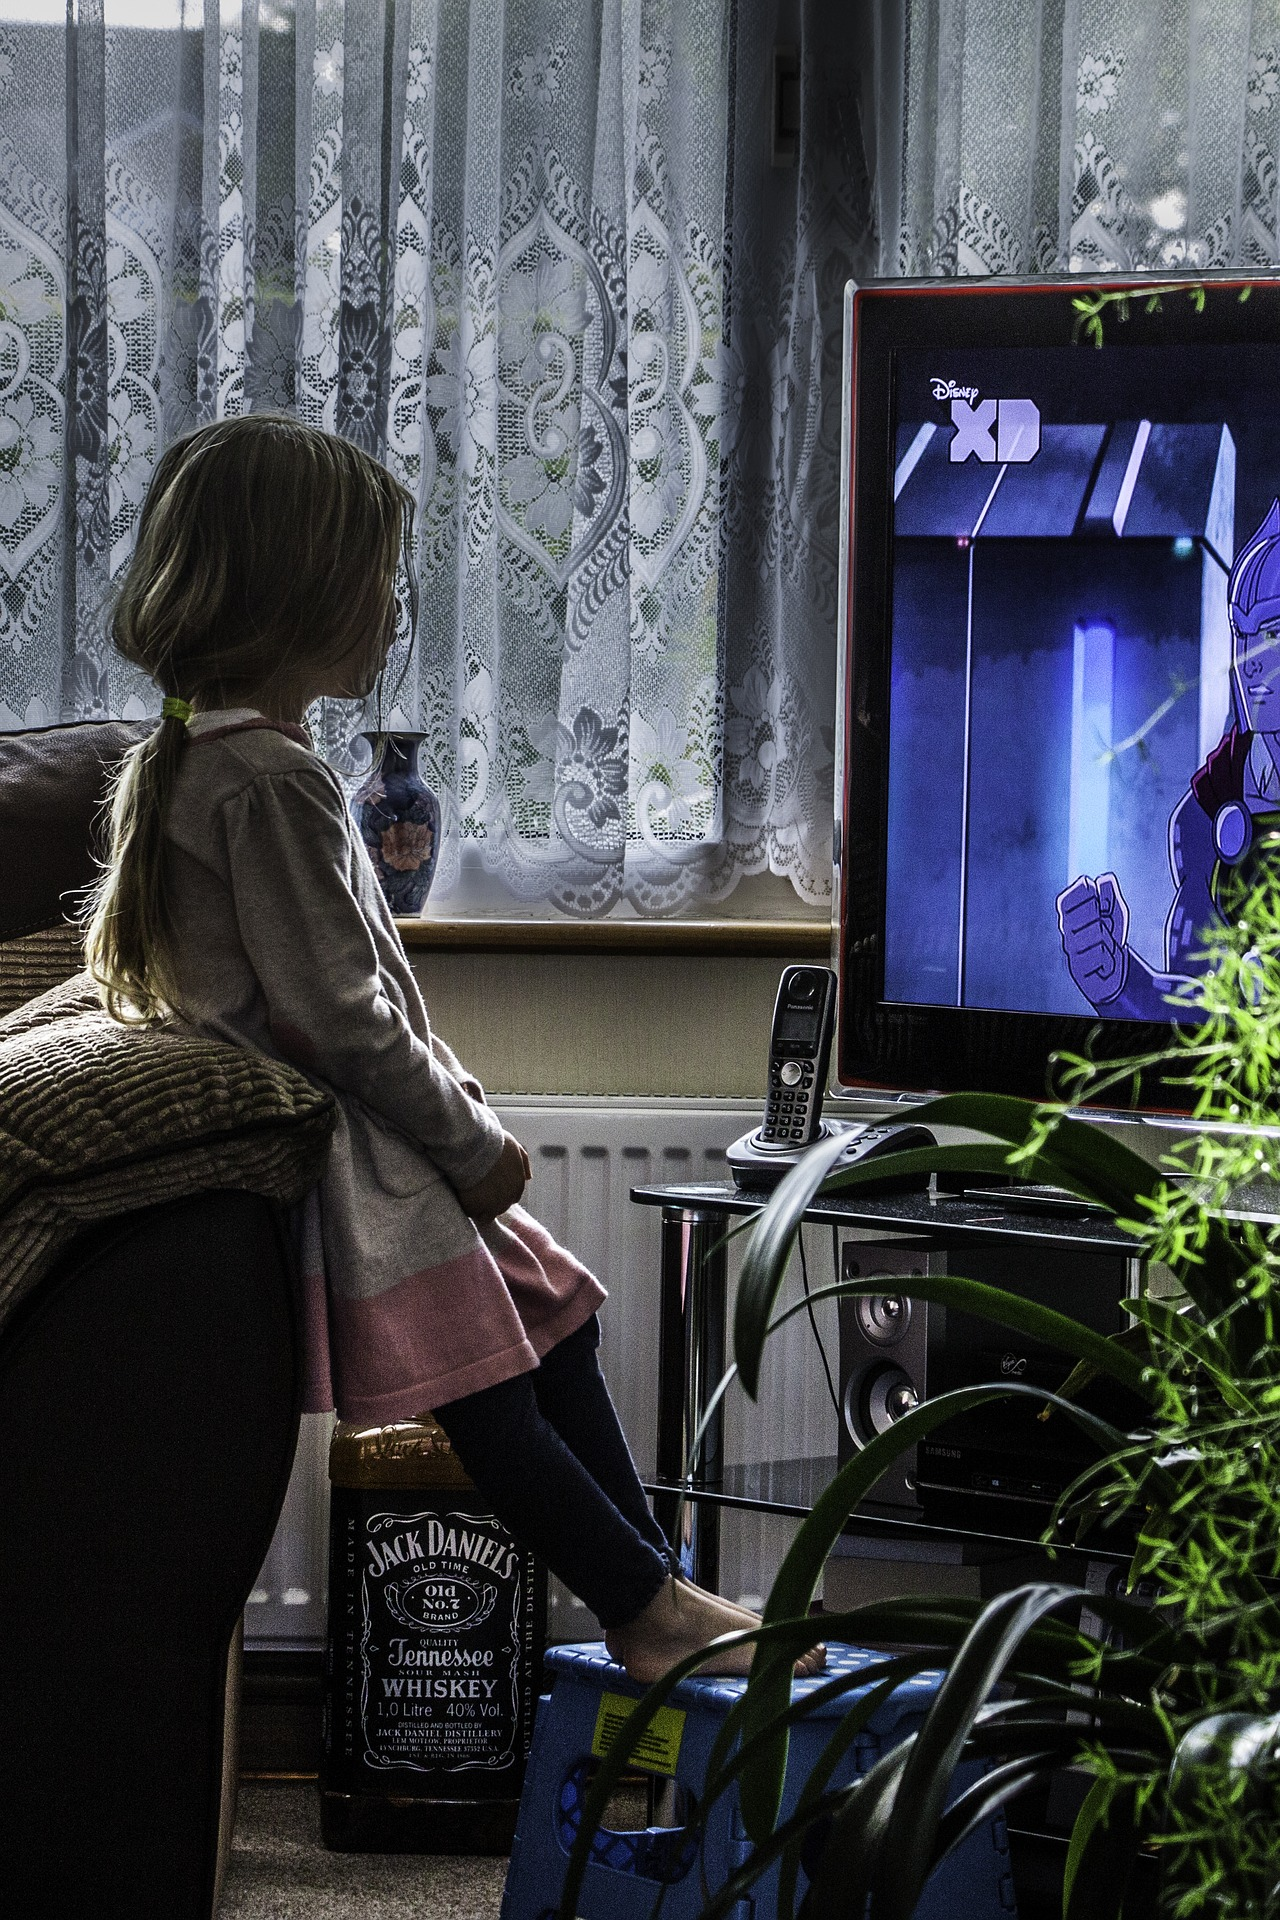 A research team from Japan also found that excessive TV watching had the ability to alter the structure of the brain. (Image via pixabay / CC0 1.0)